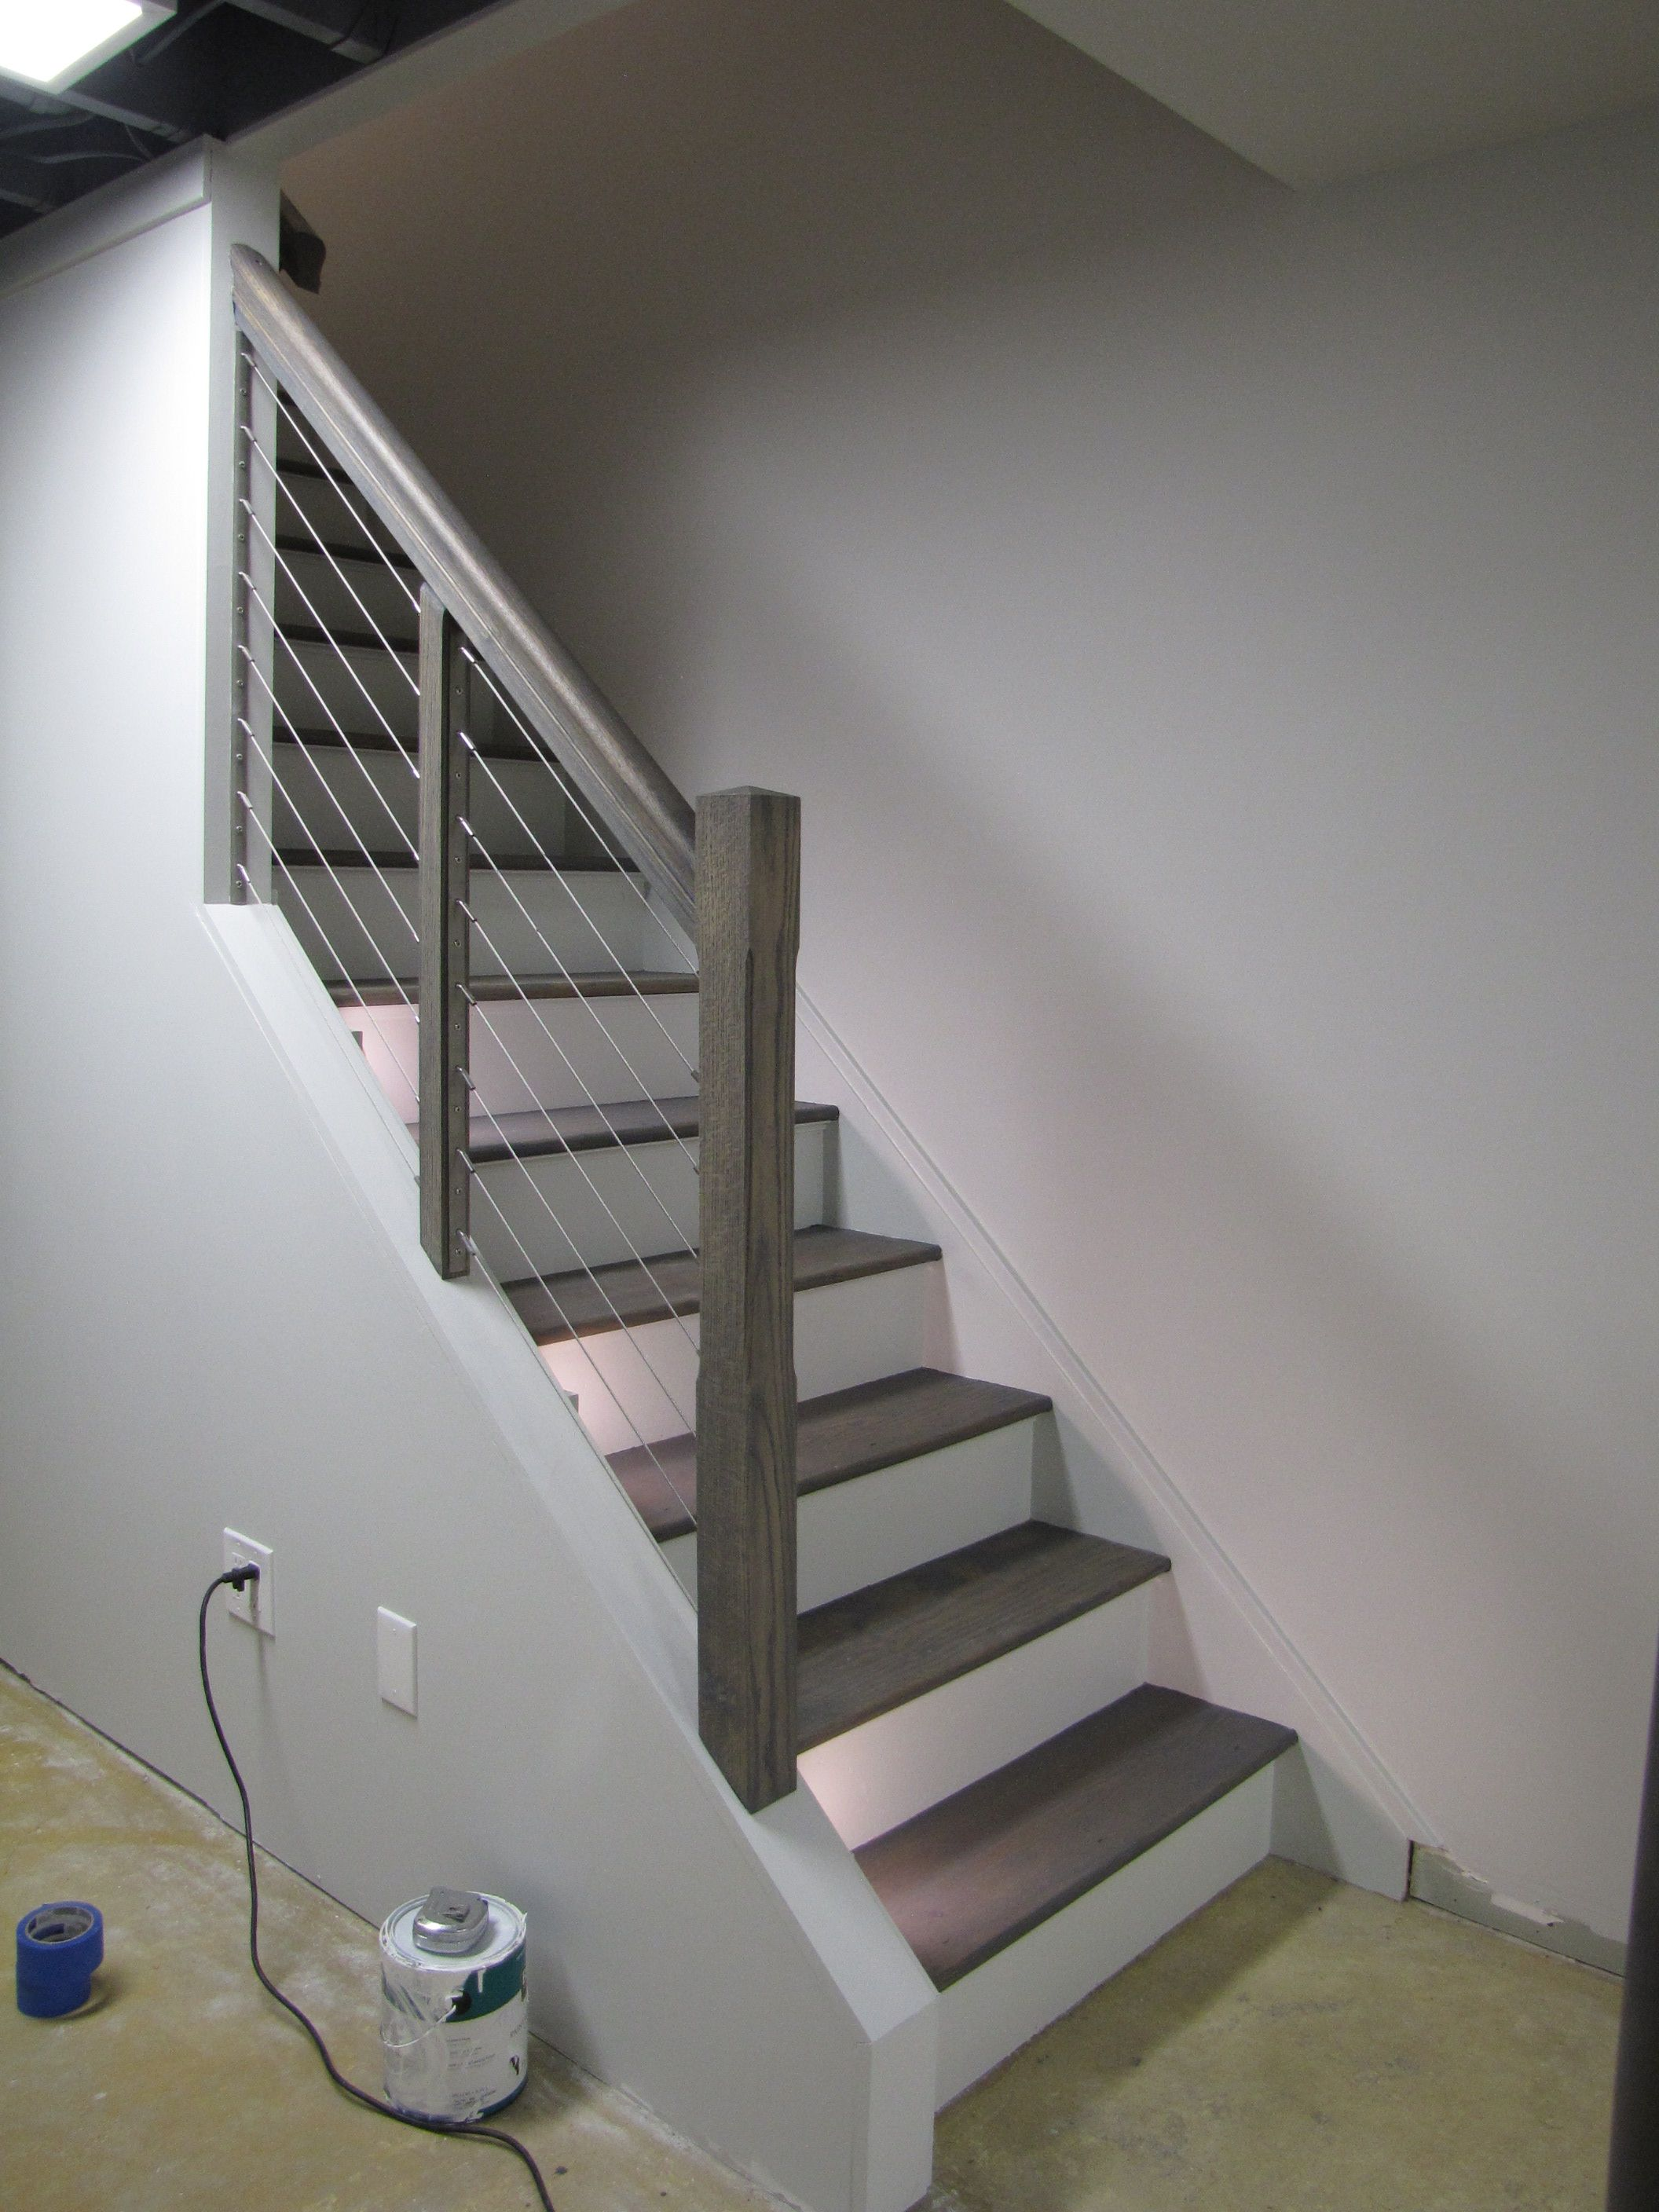 Stair Finishes Pictures I Stained The Studio Handrail And Stair Treads With General